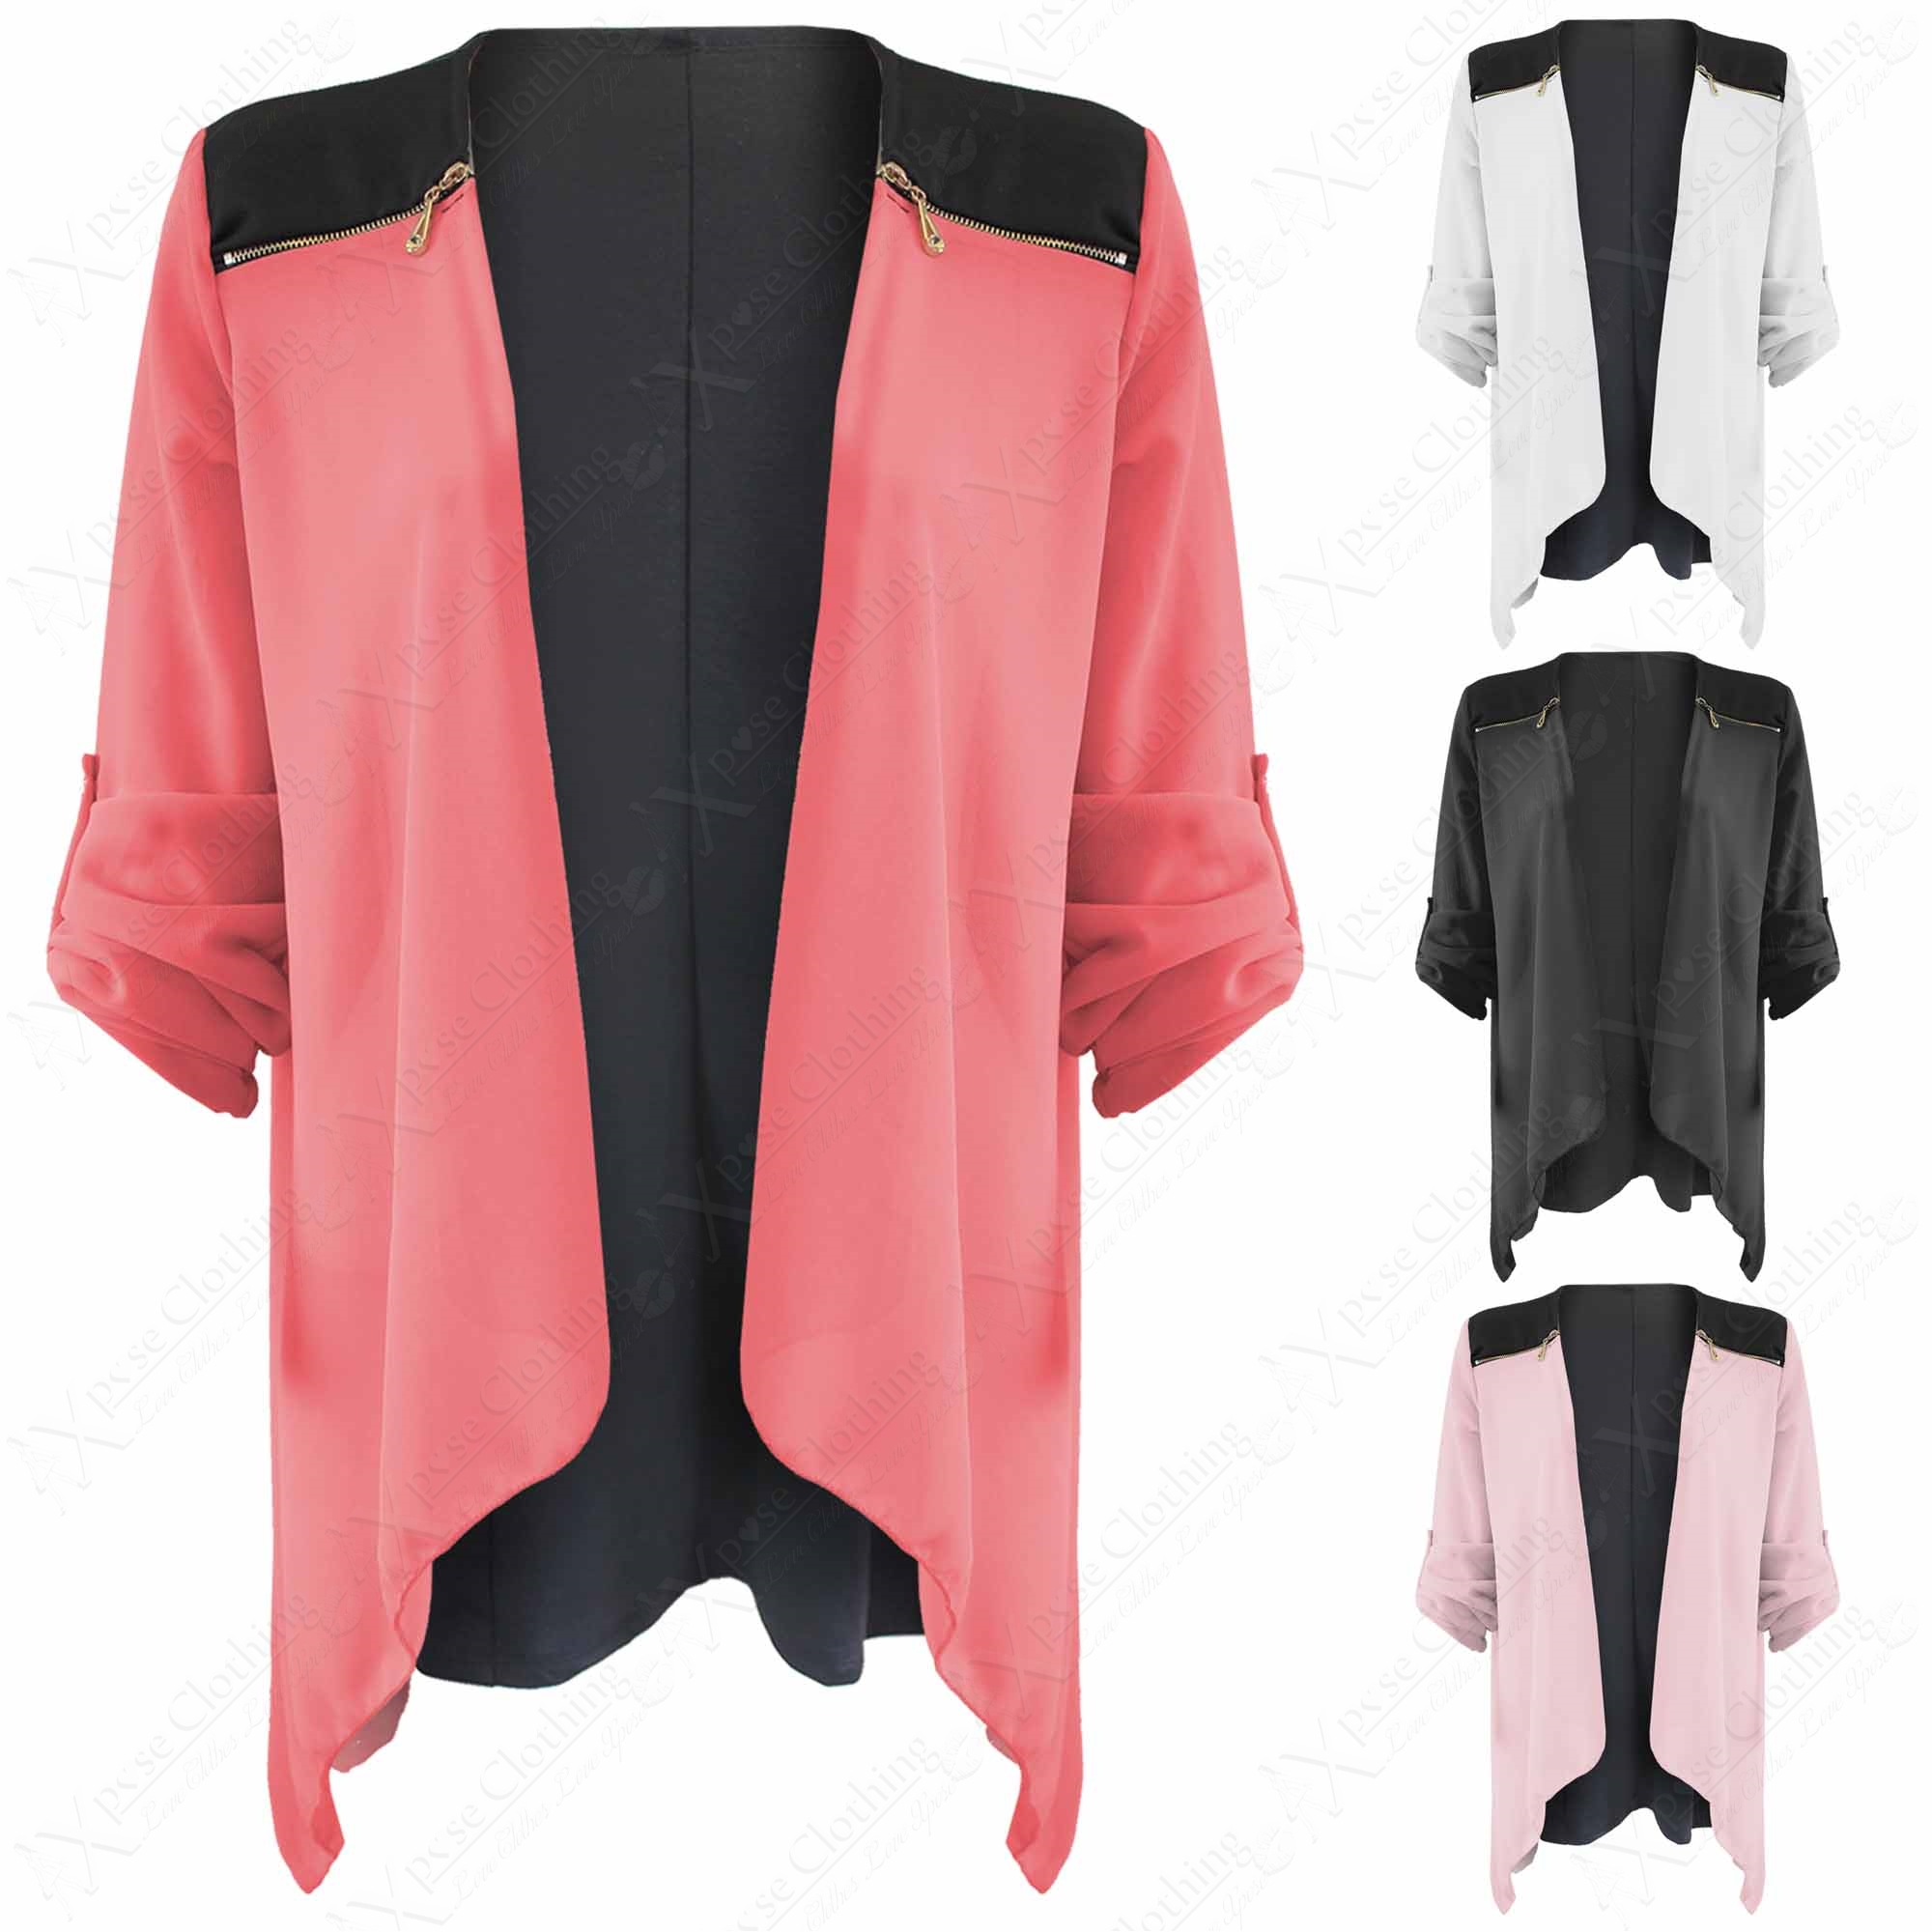 NEW LADIES LONG CHIFFON WATERFALL CARDIGAN TOPS WOMEN ZIP ...